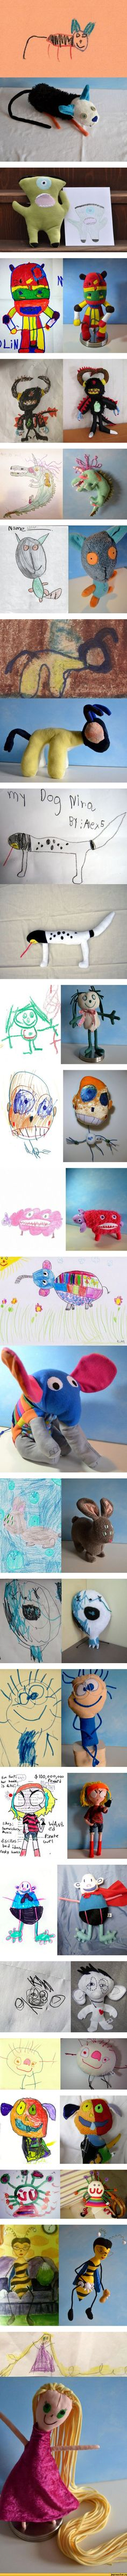 Cute toys made of drawings! :)